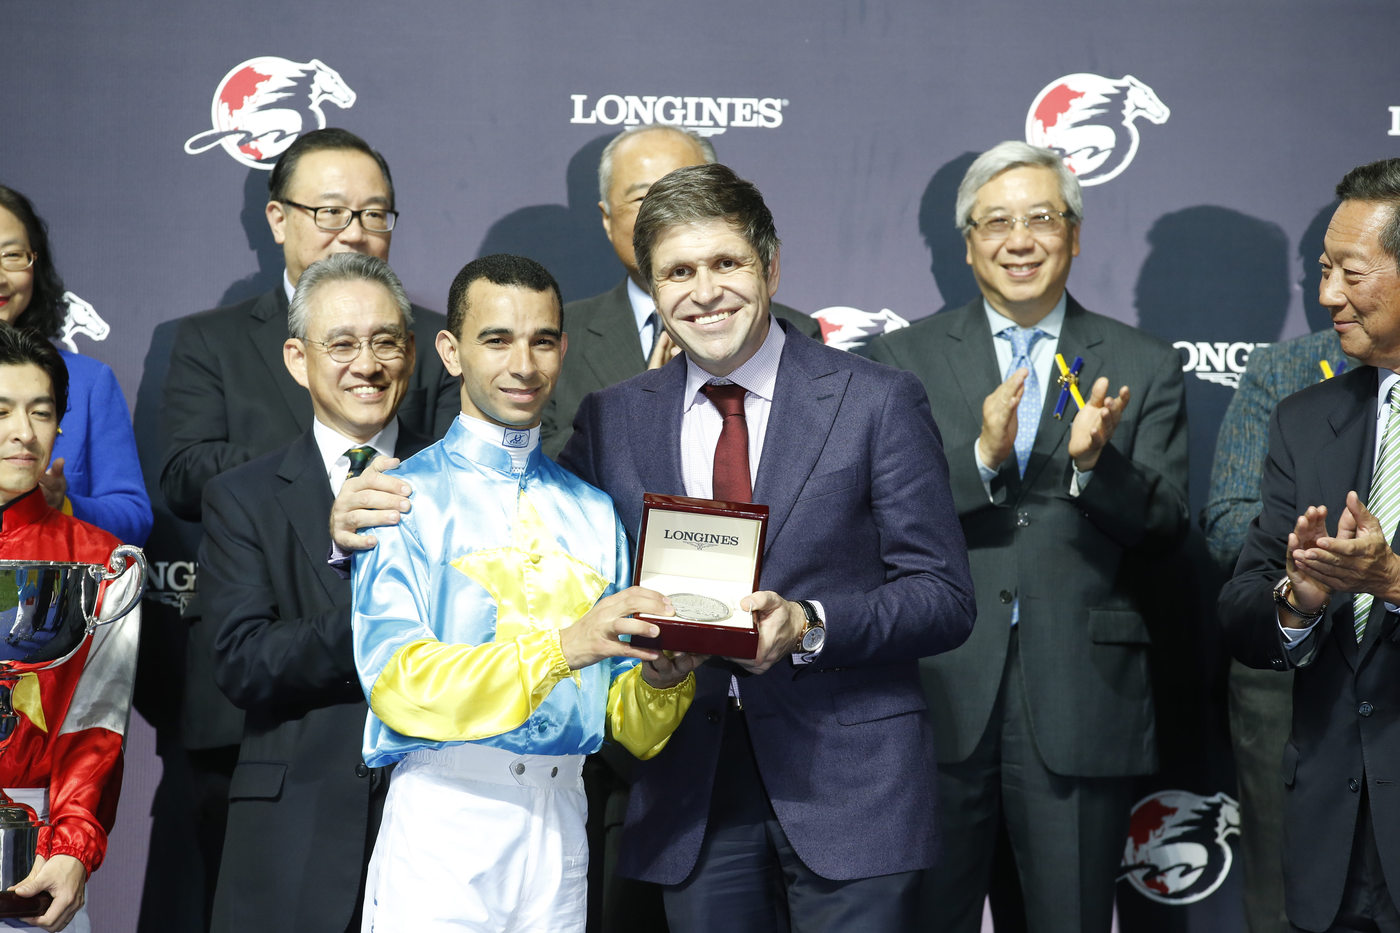 Longines Flat Racing Event: Remarkable victory of Yuichi Fukunaga at the Longines International Jockey's Championship 2014 6